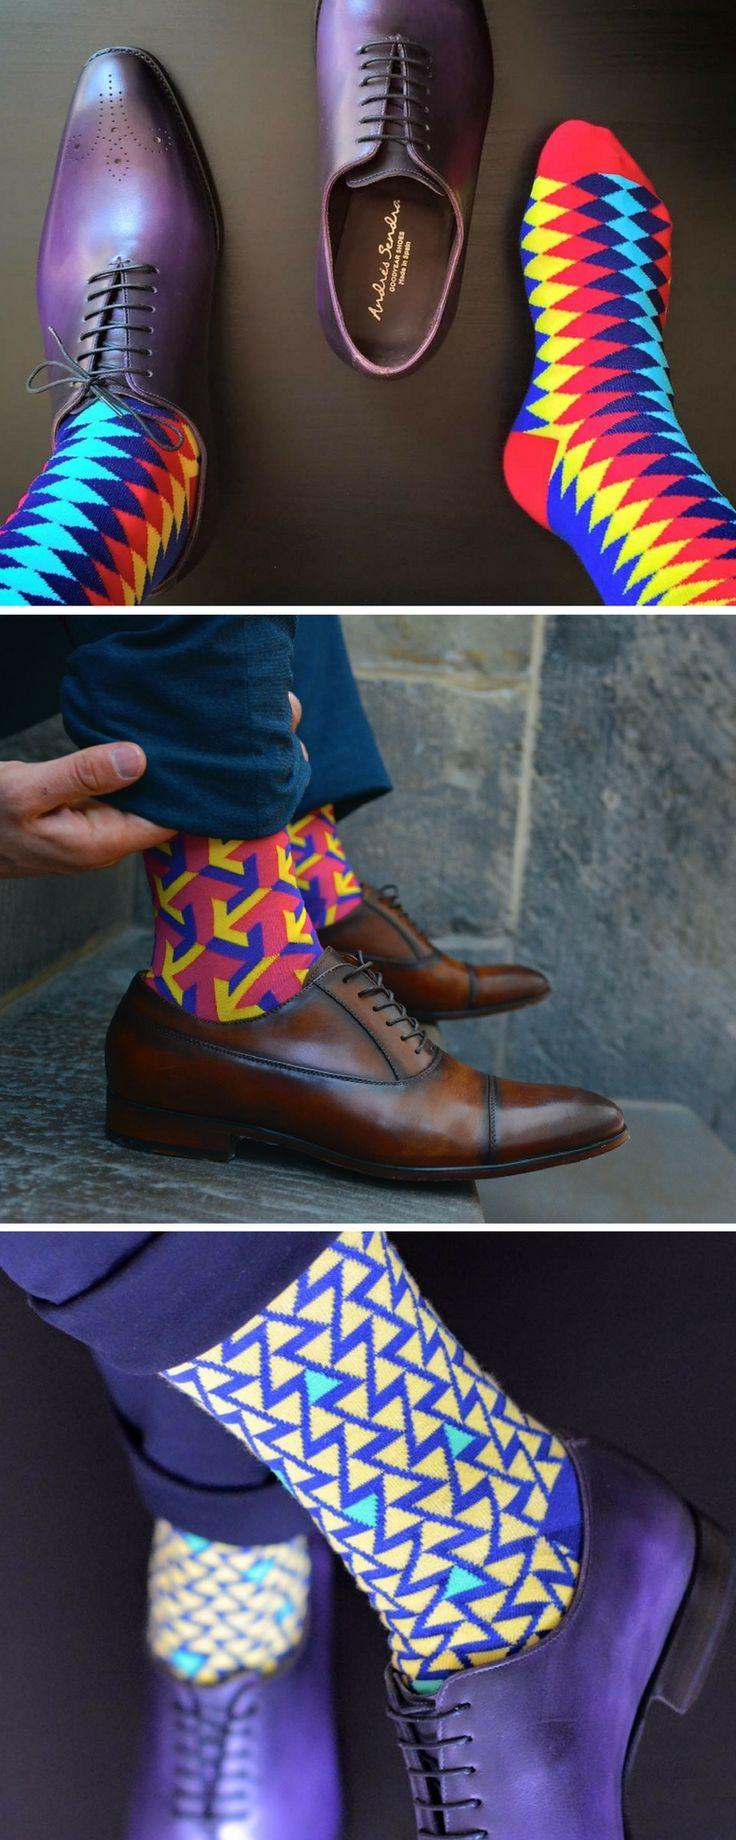 Sock game compliments guaranteed. Soxy.com designs the coolest, most fun dress socks.